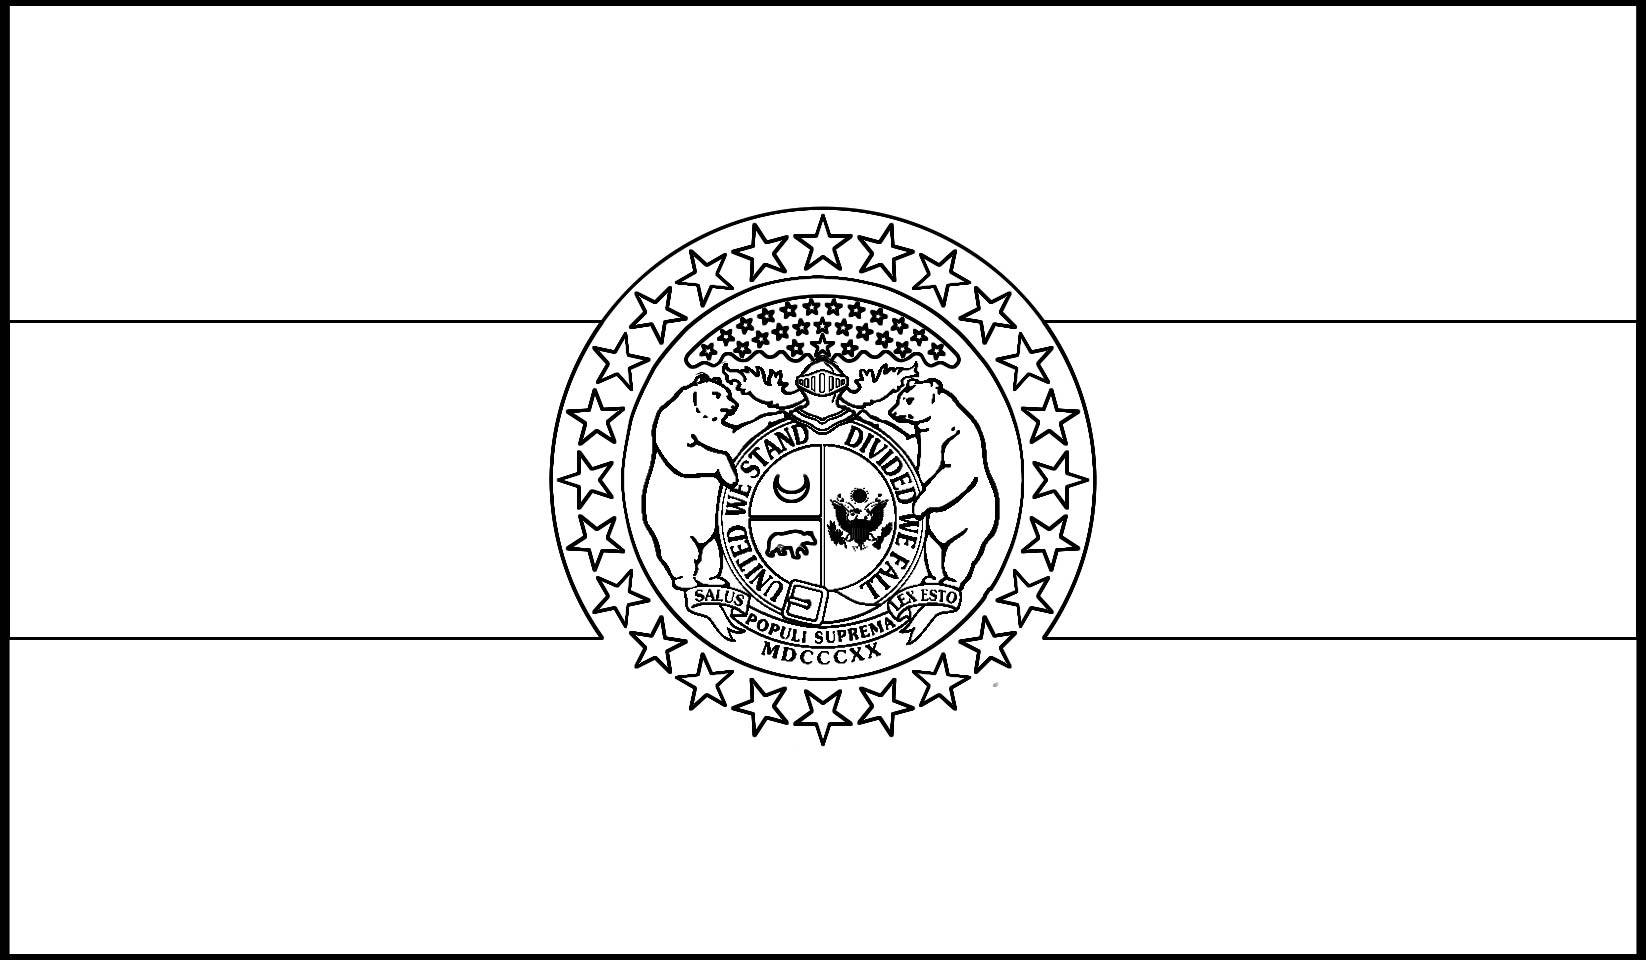 Missouri state flag download missouri state flag line drawings jpg buycottarizona